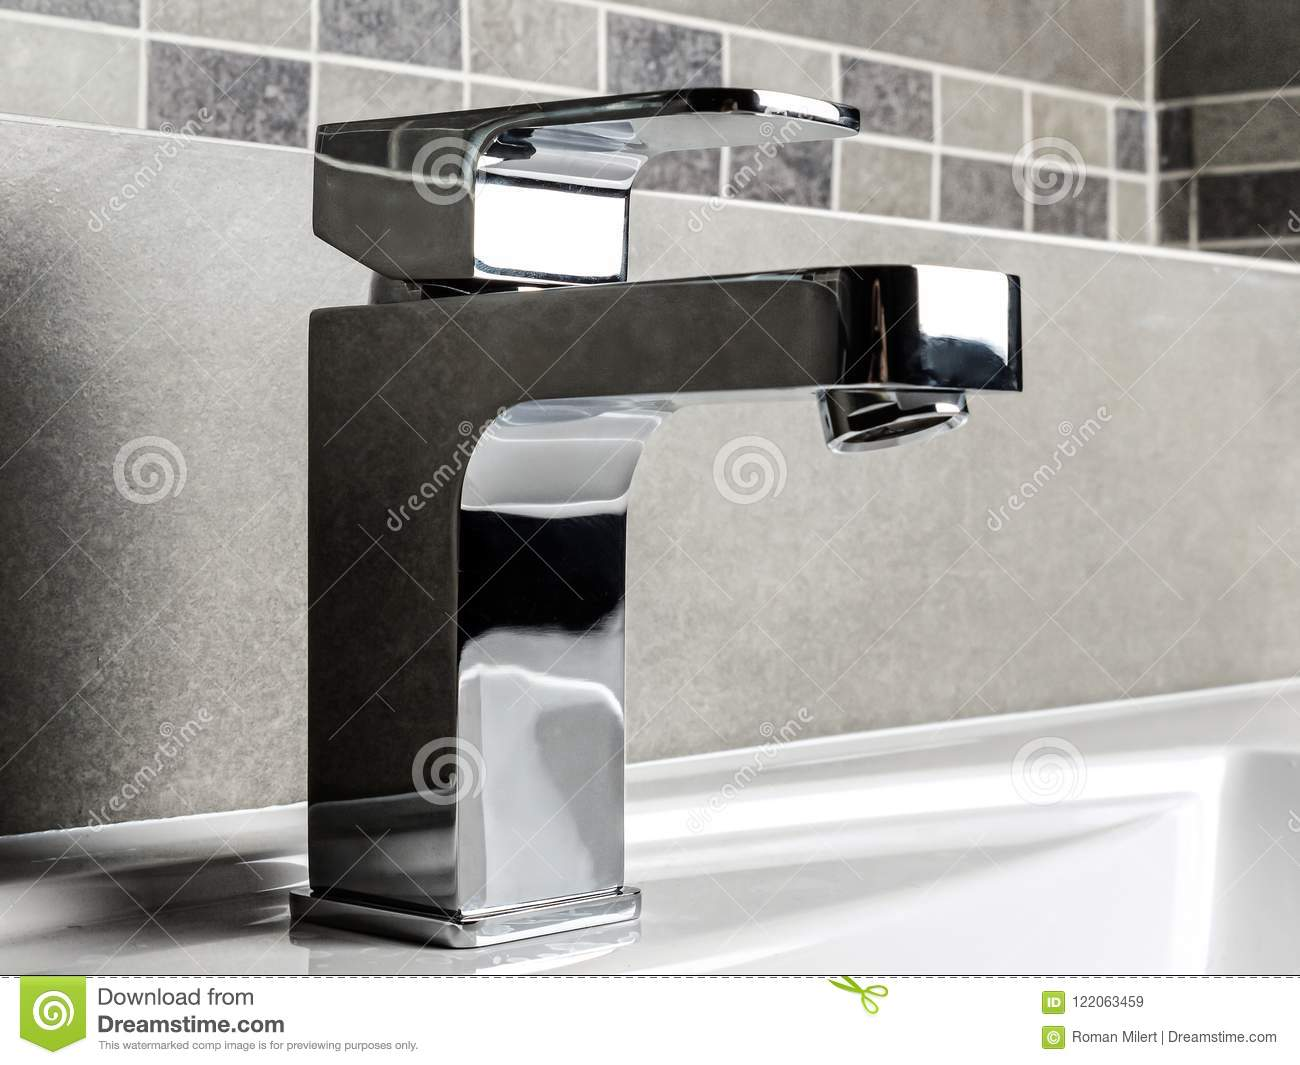 Bathroom chrome faucet stock image. Image of modern - 122063459